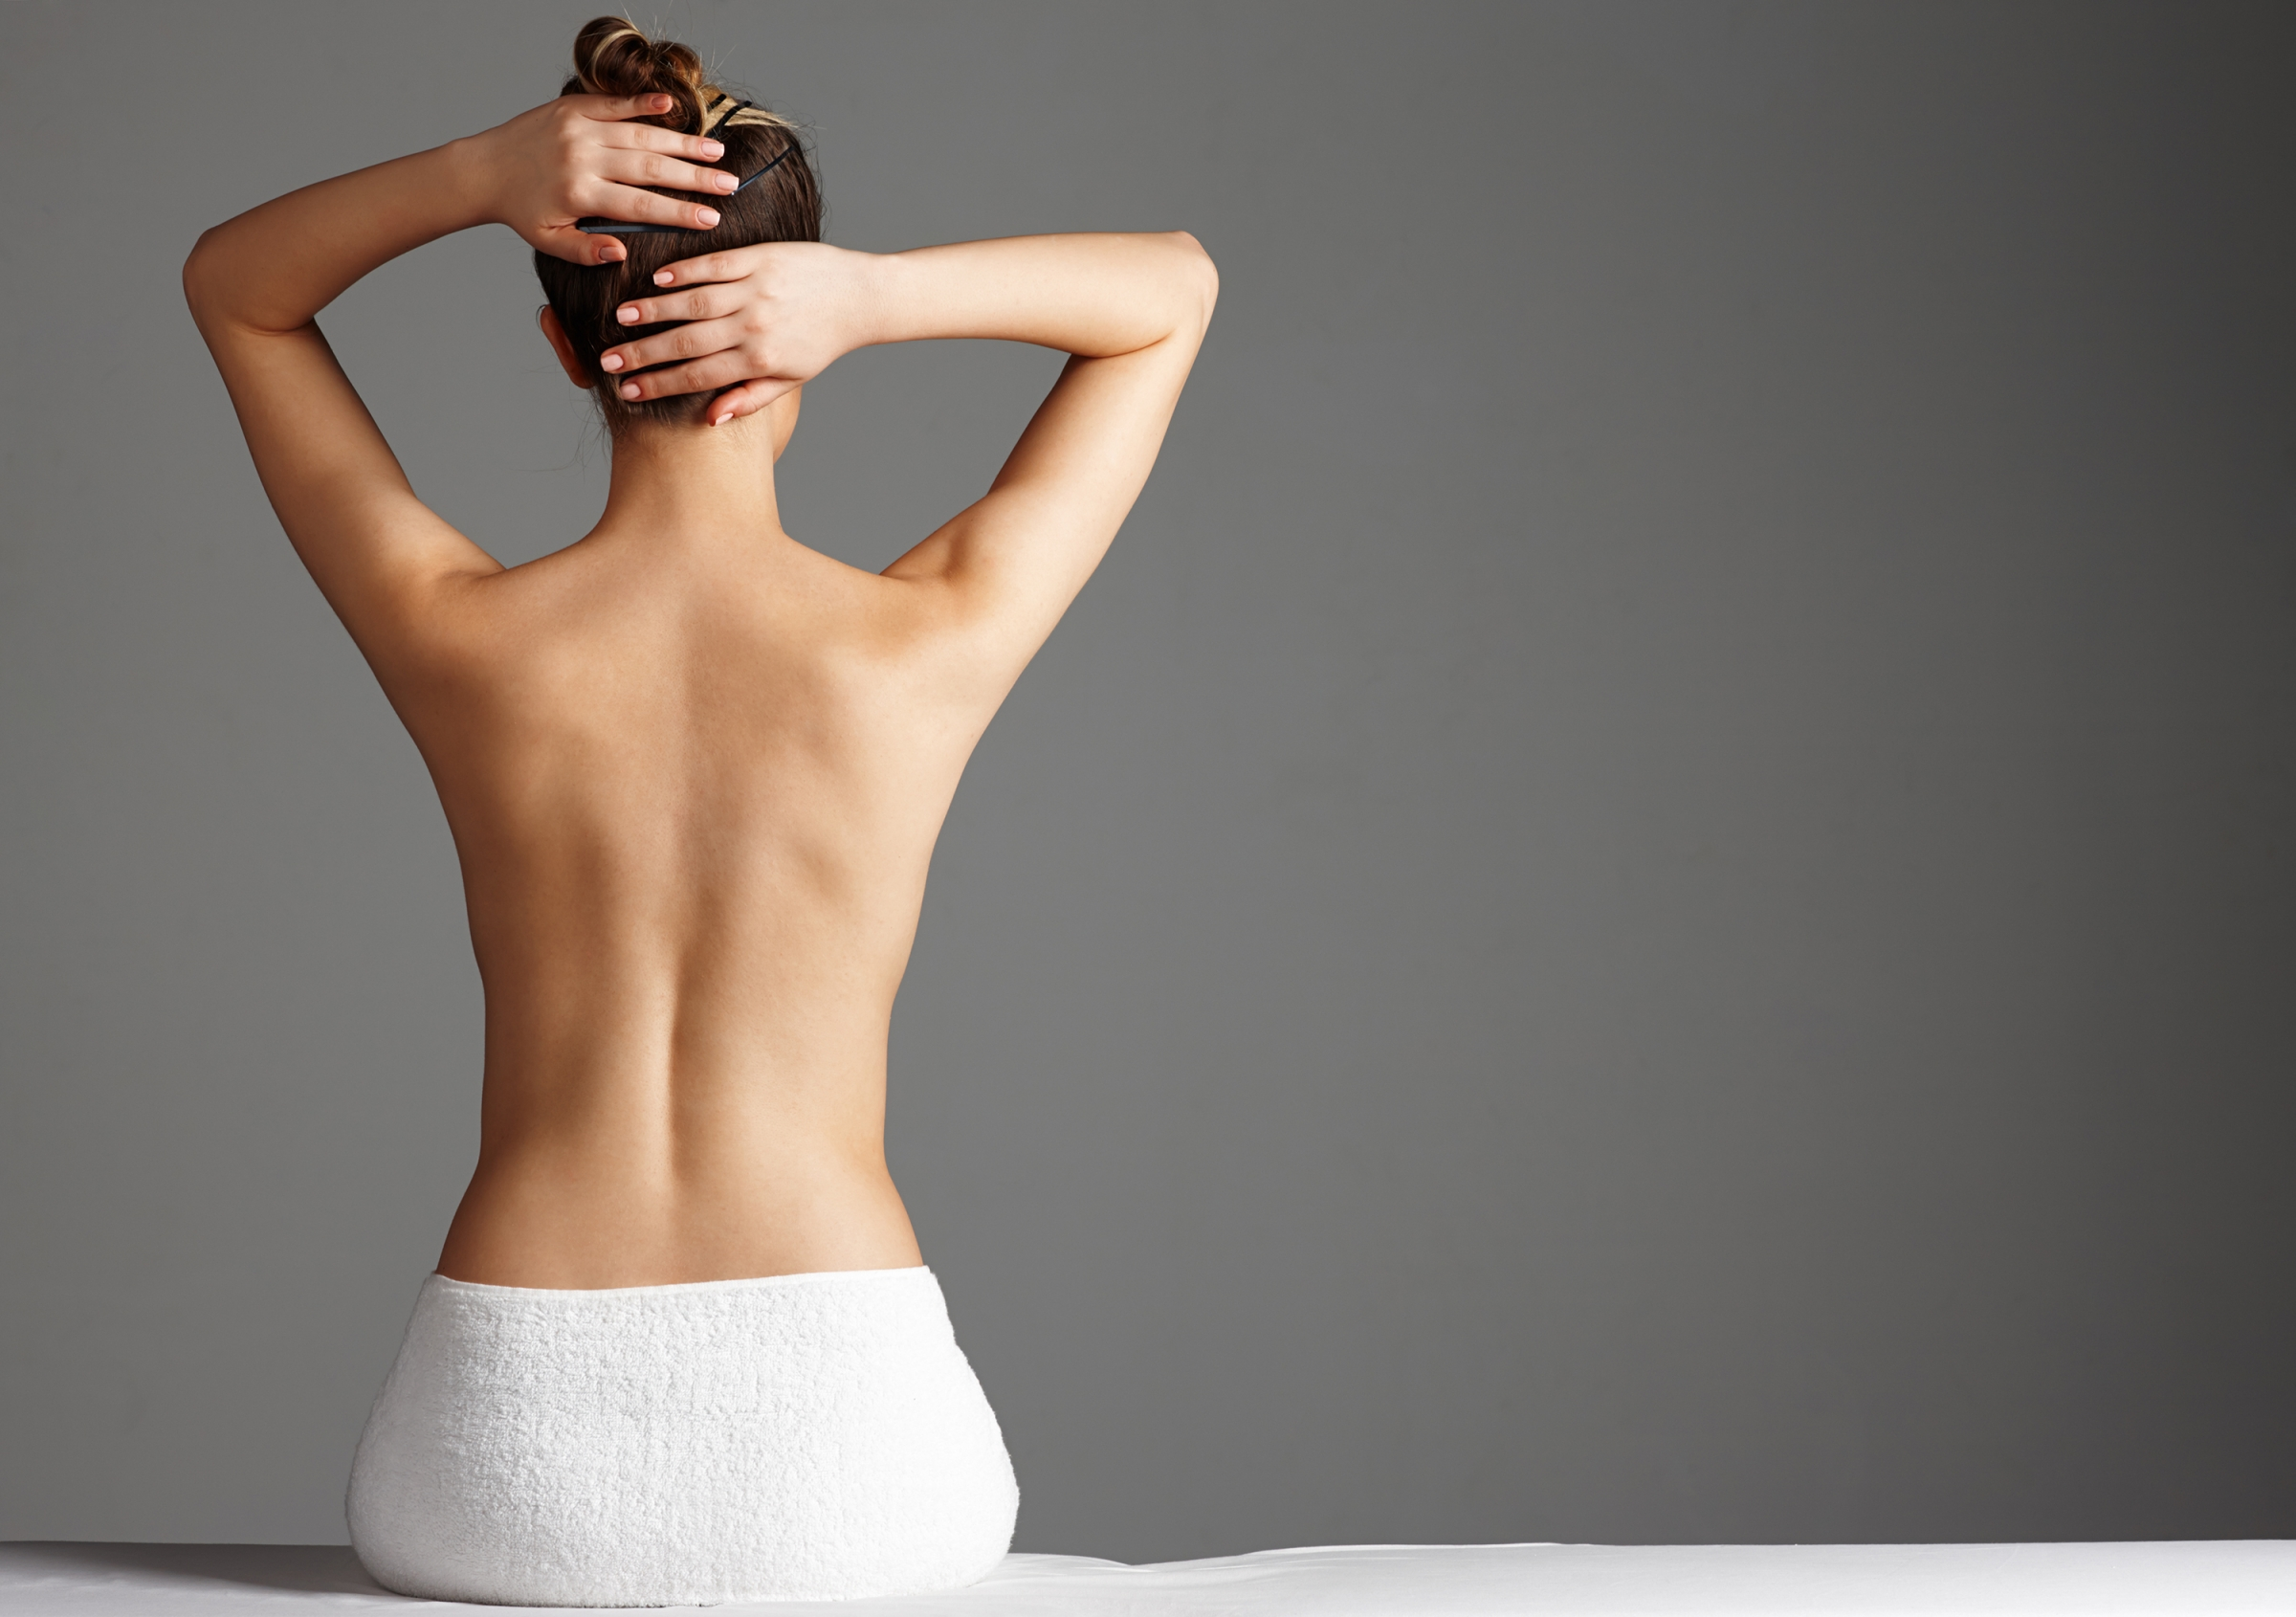 Weston Back Lift Surgery | Miami Body Surgeon